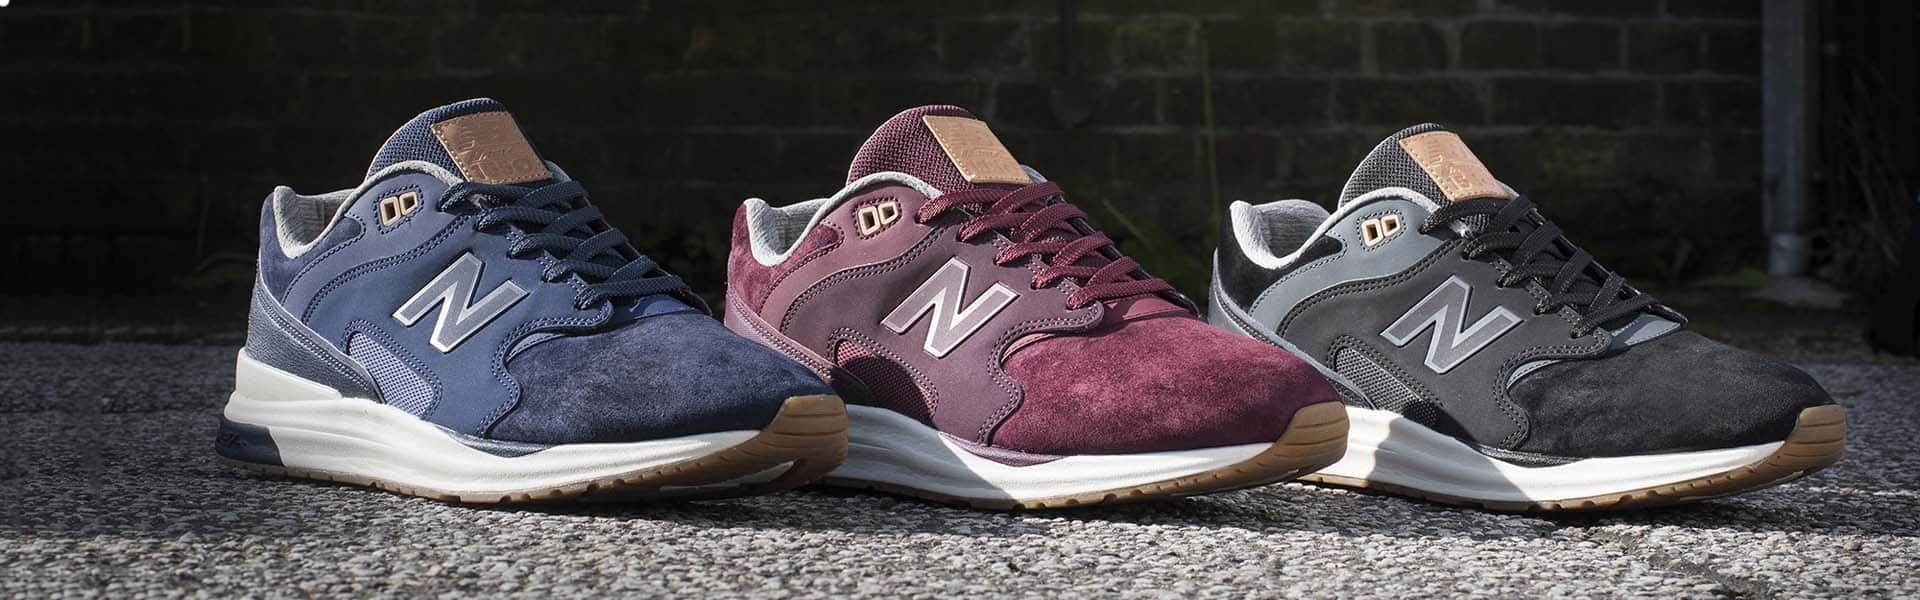 New Balance Shoes For Standing At Work